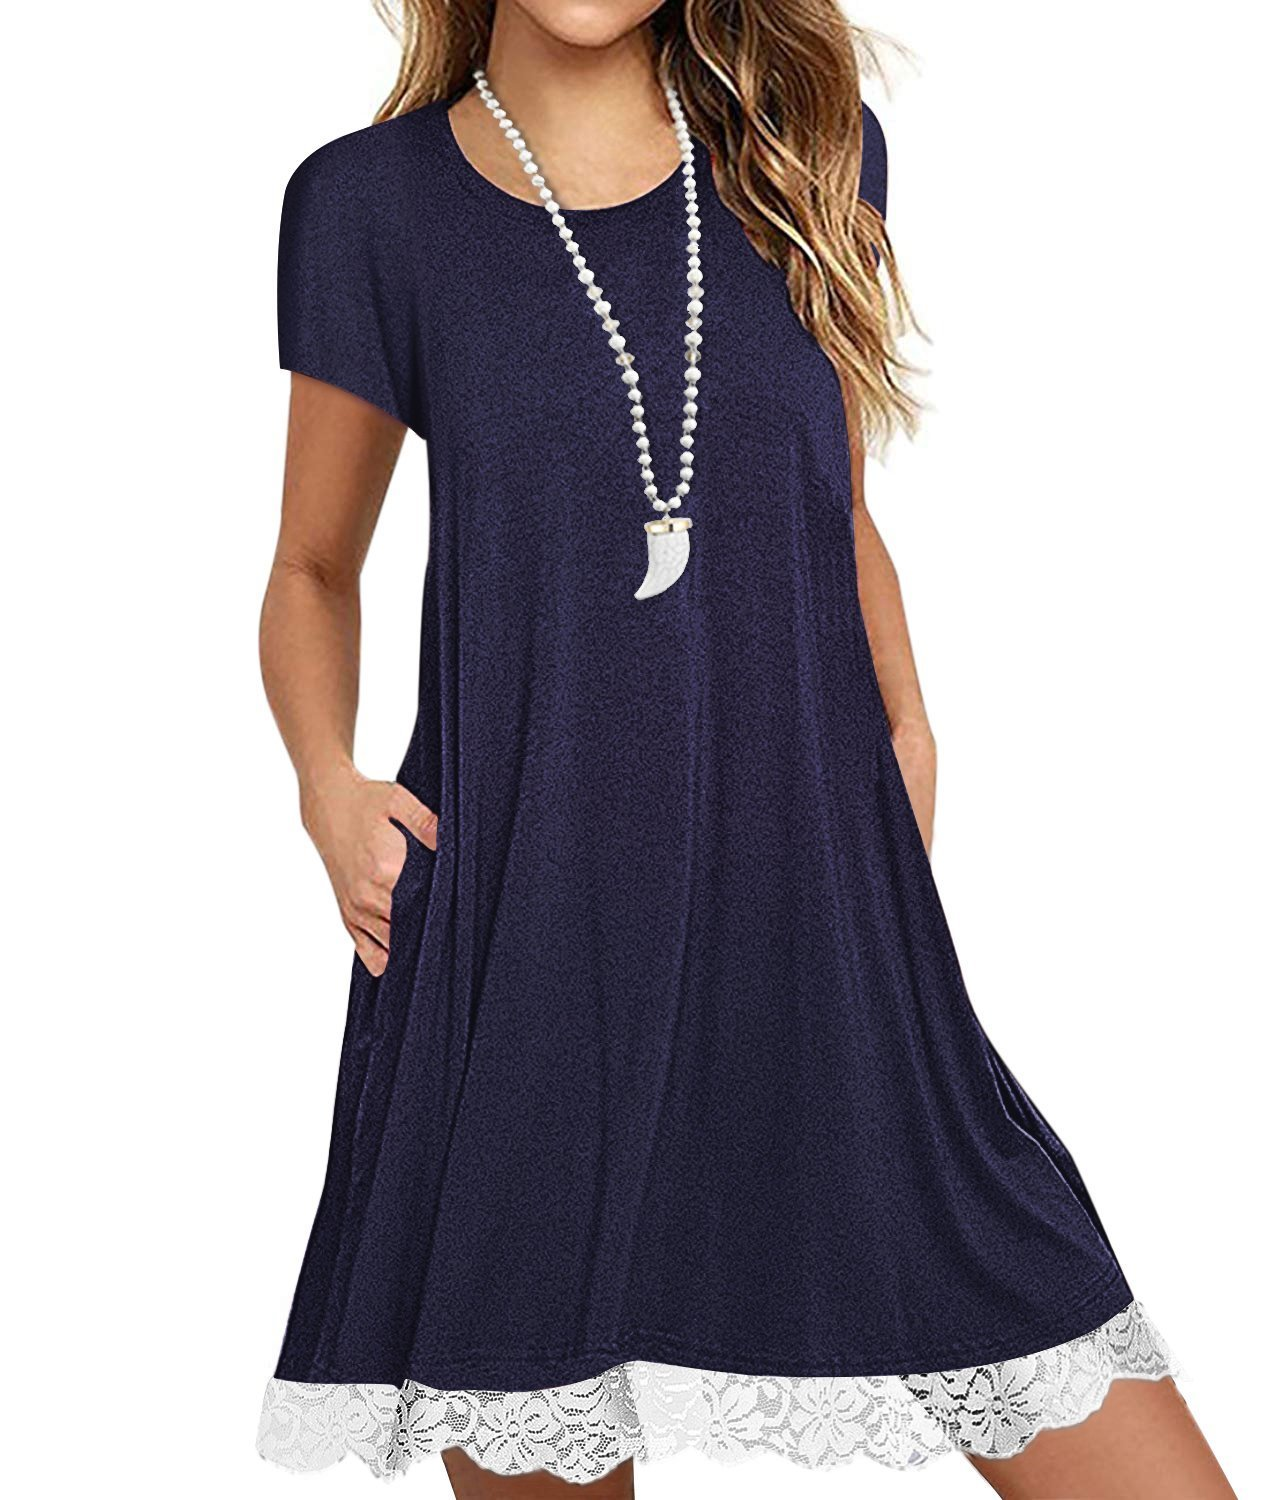 Eanklosco Womens Casual Short Sleeve Plain Pocket V Neck T Shirt Tunic Dress (NavyBlue-2, M)